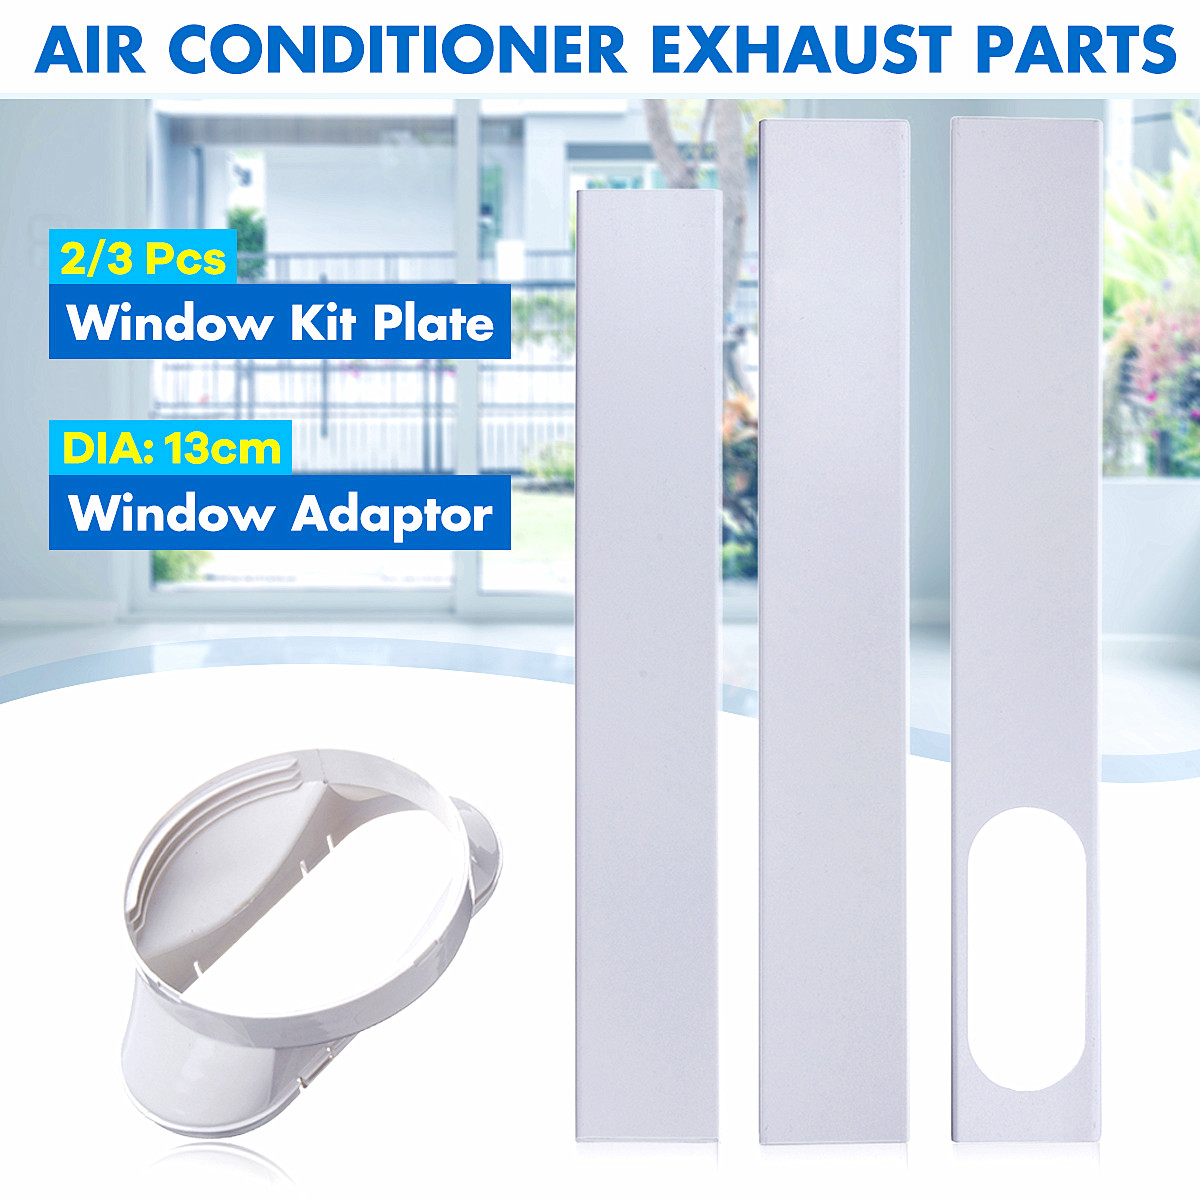 New 190cm Adjustable Window Adaptor/Window Slide Kit Plate Exhaust Hose Tube Connector For Portable Air Conditioner Accessories